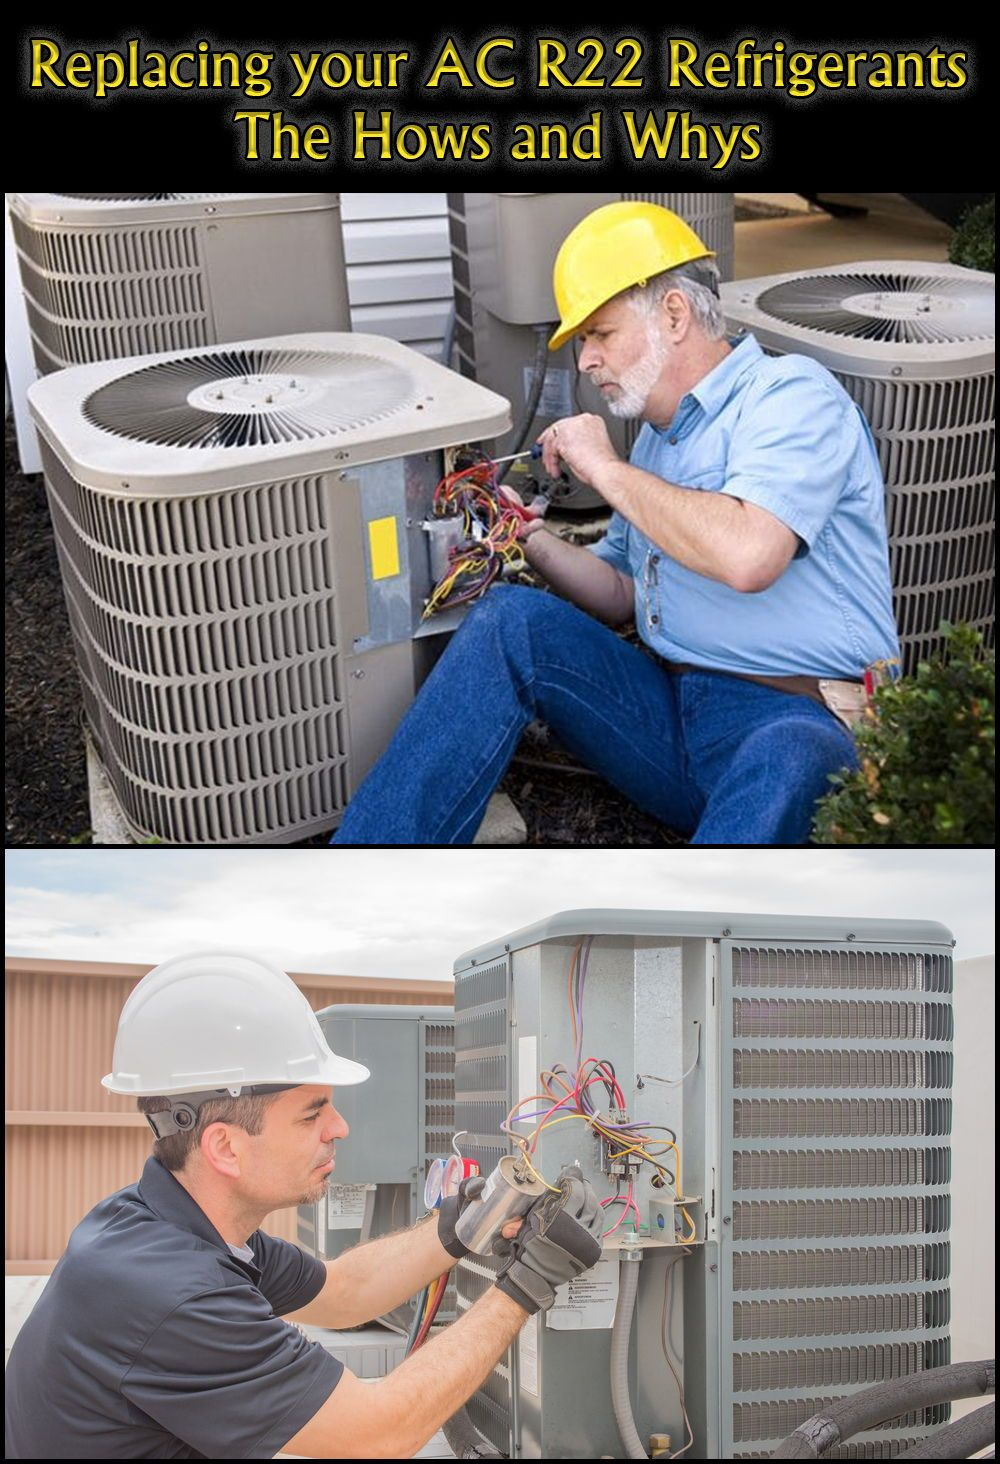 Replacing your AC R22 Refrigerants The Hows and Whys